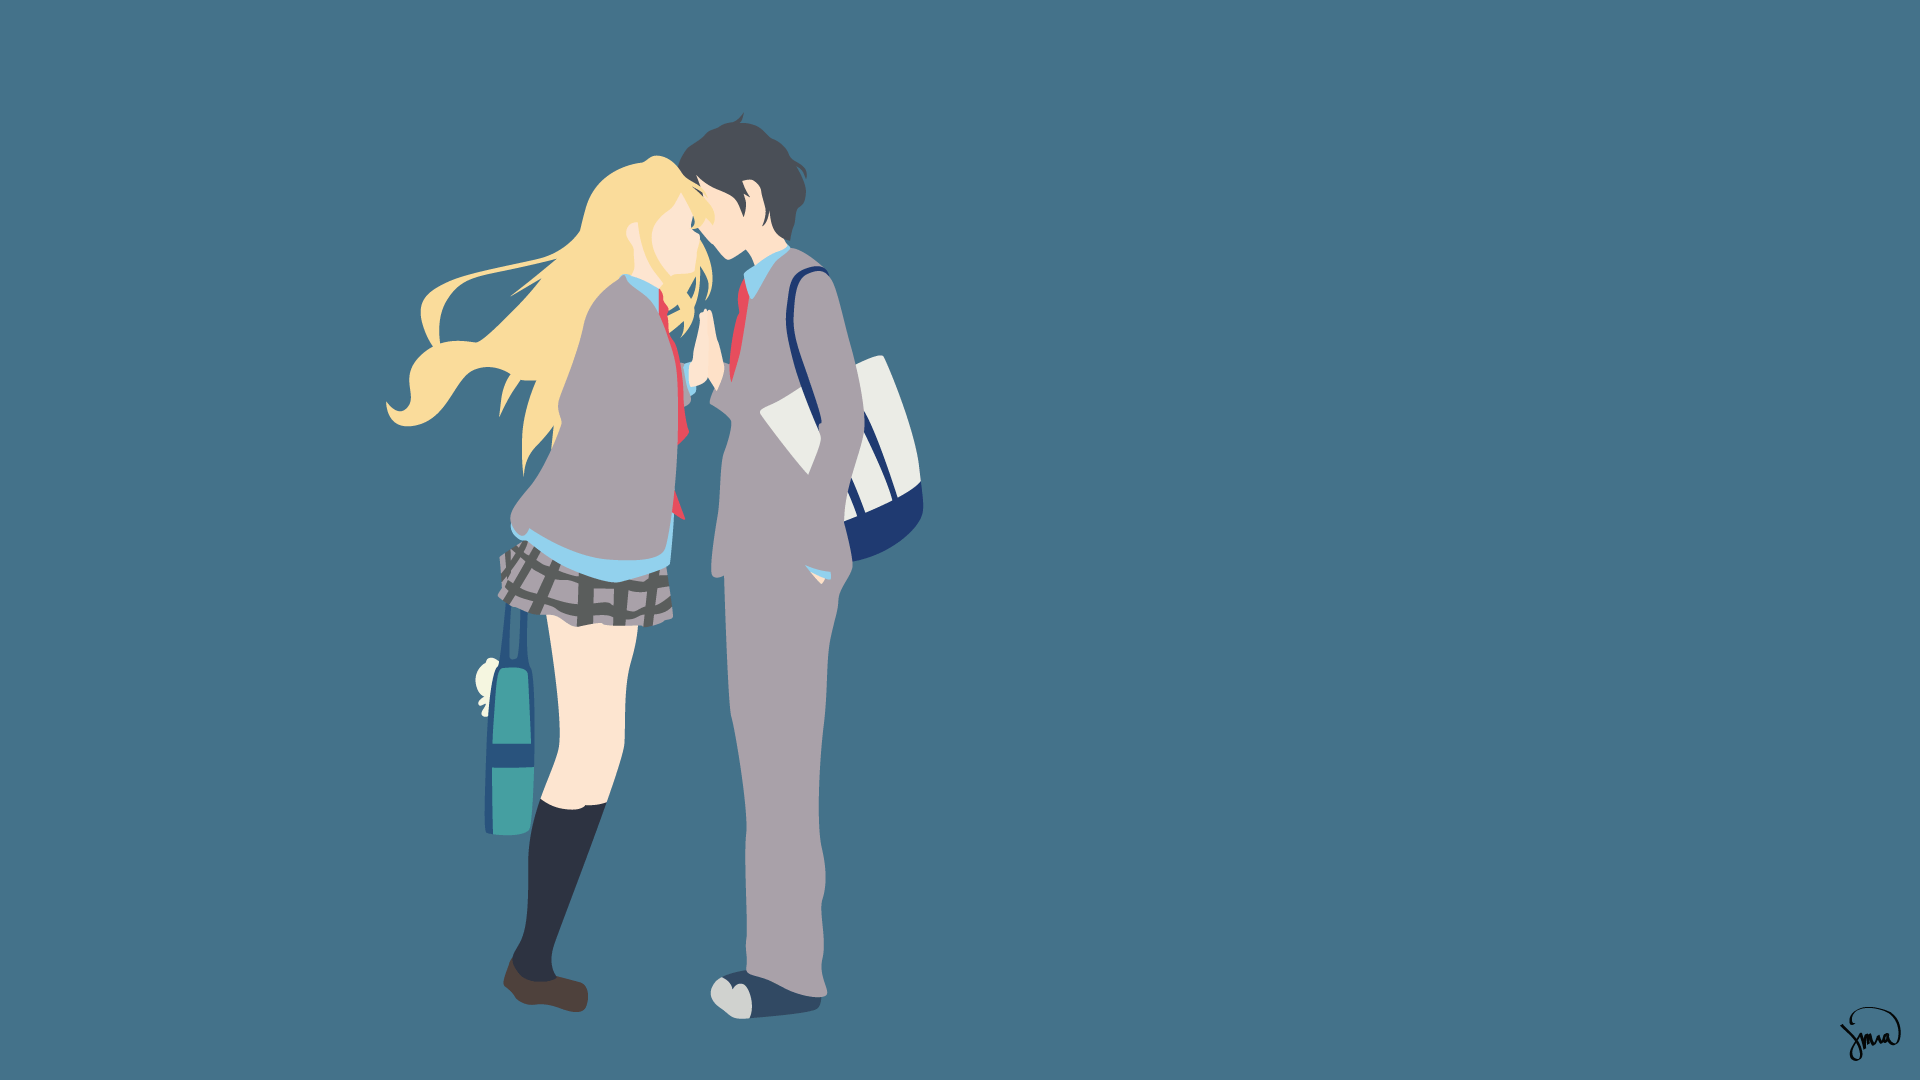 Anime Characters Born On April 7 : Your lie in april wallpapers wallpaper cave